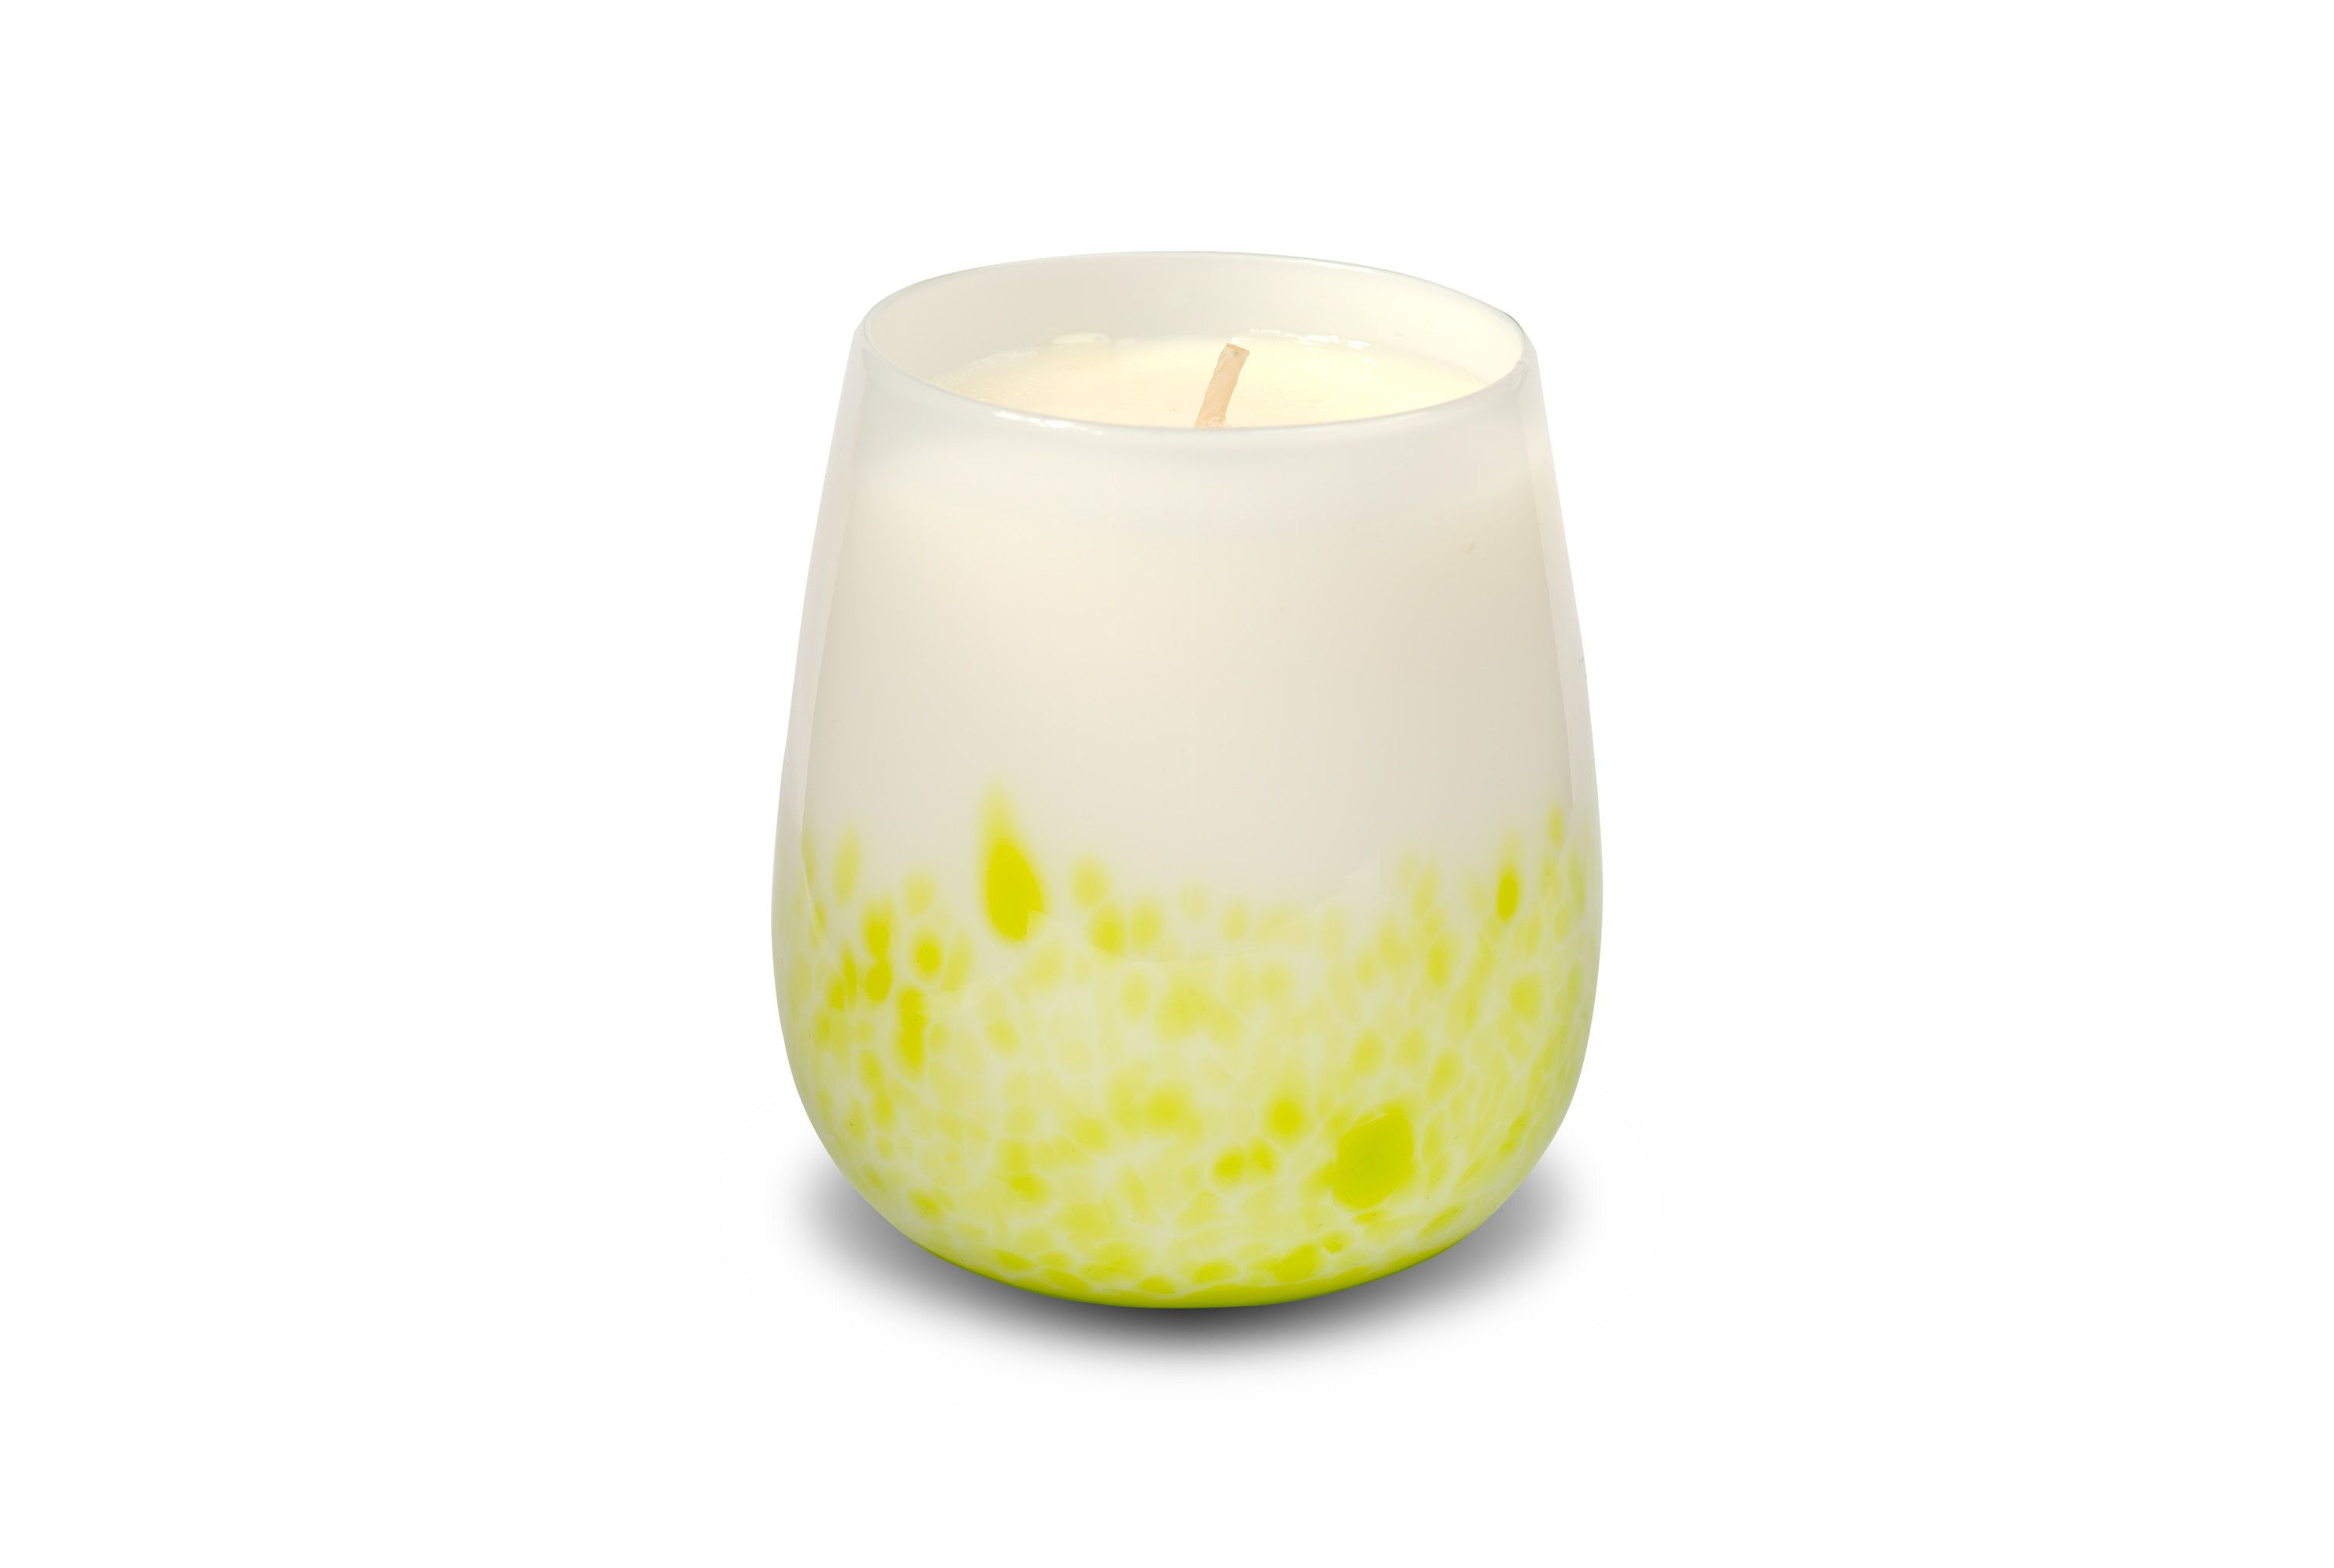 Buy Candles Online Buy Candles Online Fragranced Candles Online Beautiful Gift